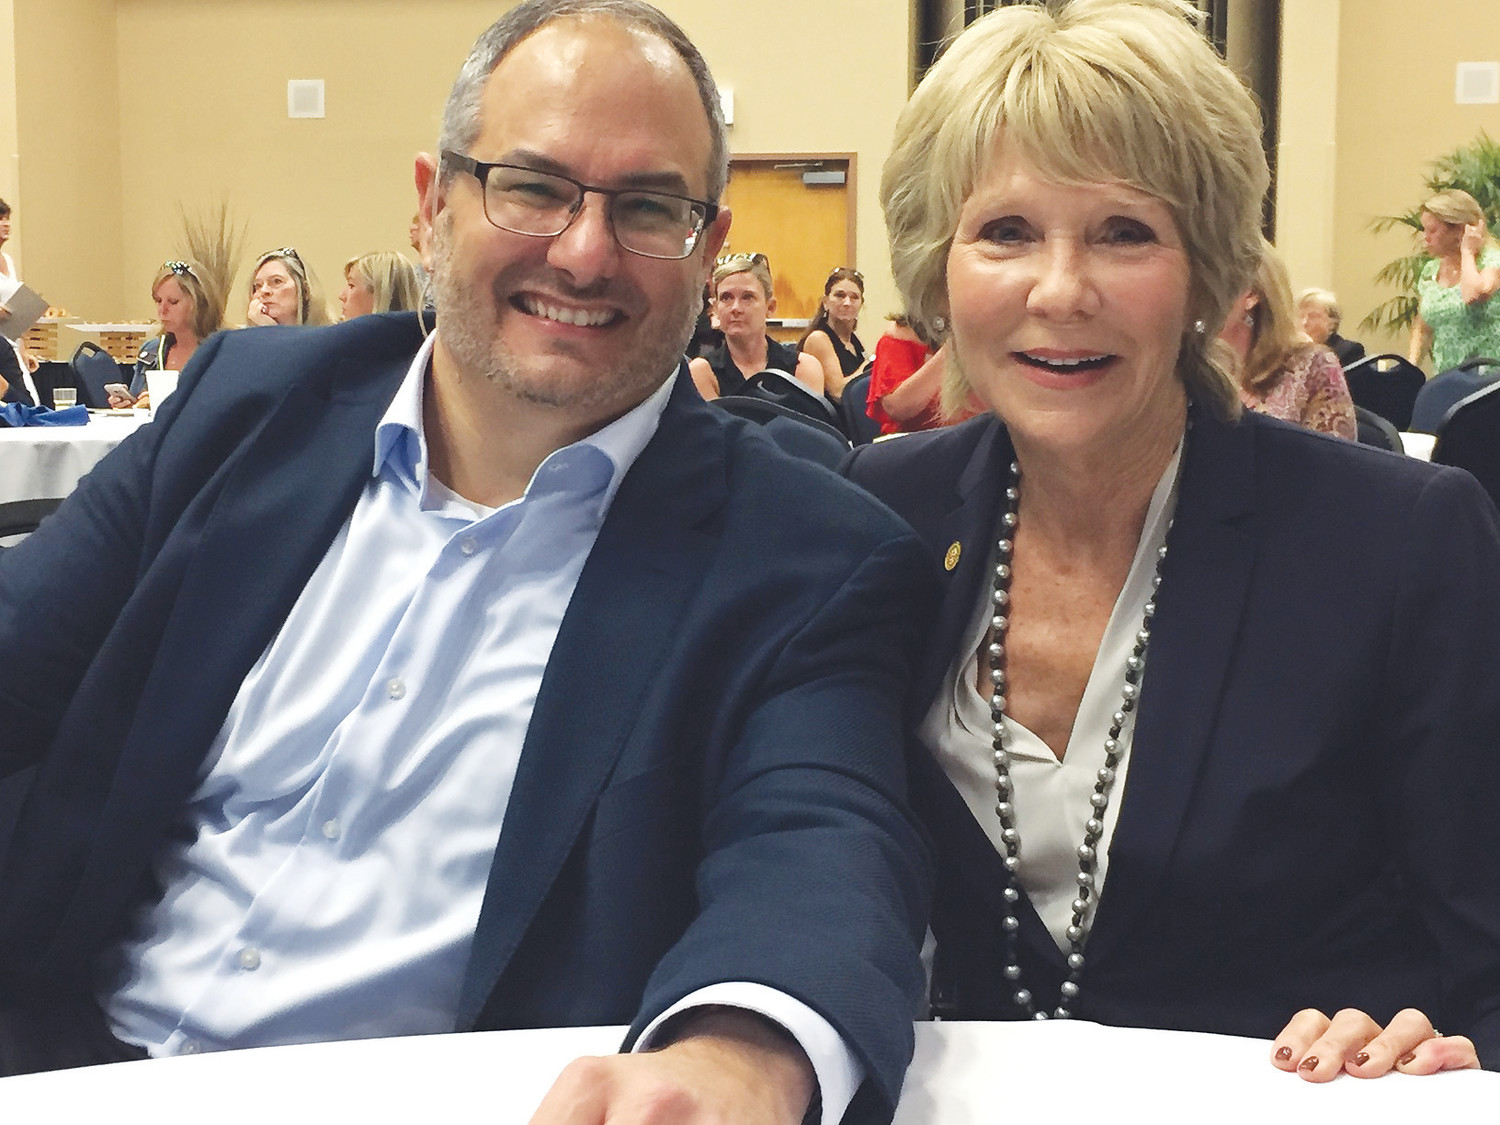 Speaker Matthew Ferrara poses with Berkshire Hathaway HomeServices Florida Network Realty Founder, President and CEO Linda Sherrer during a writing workshop hosted by the realty company.